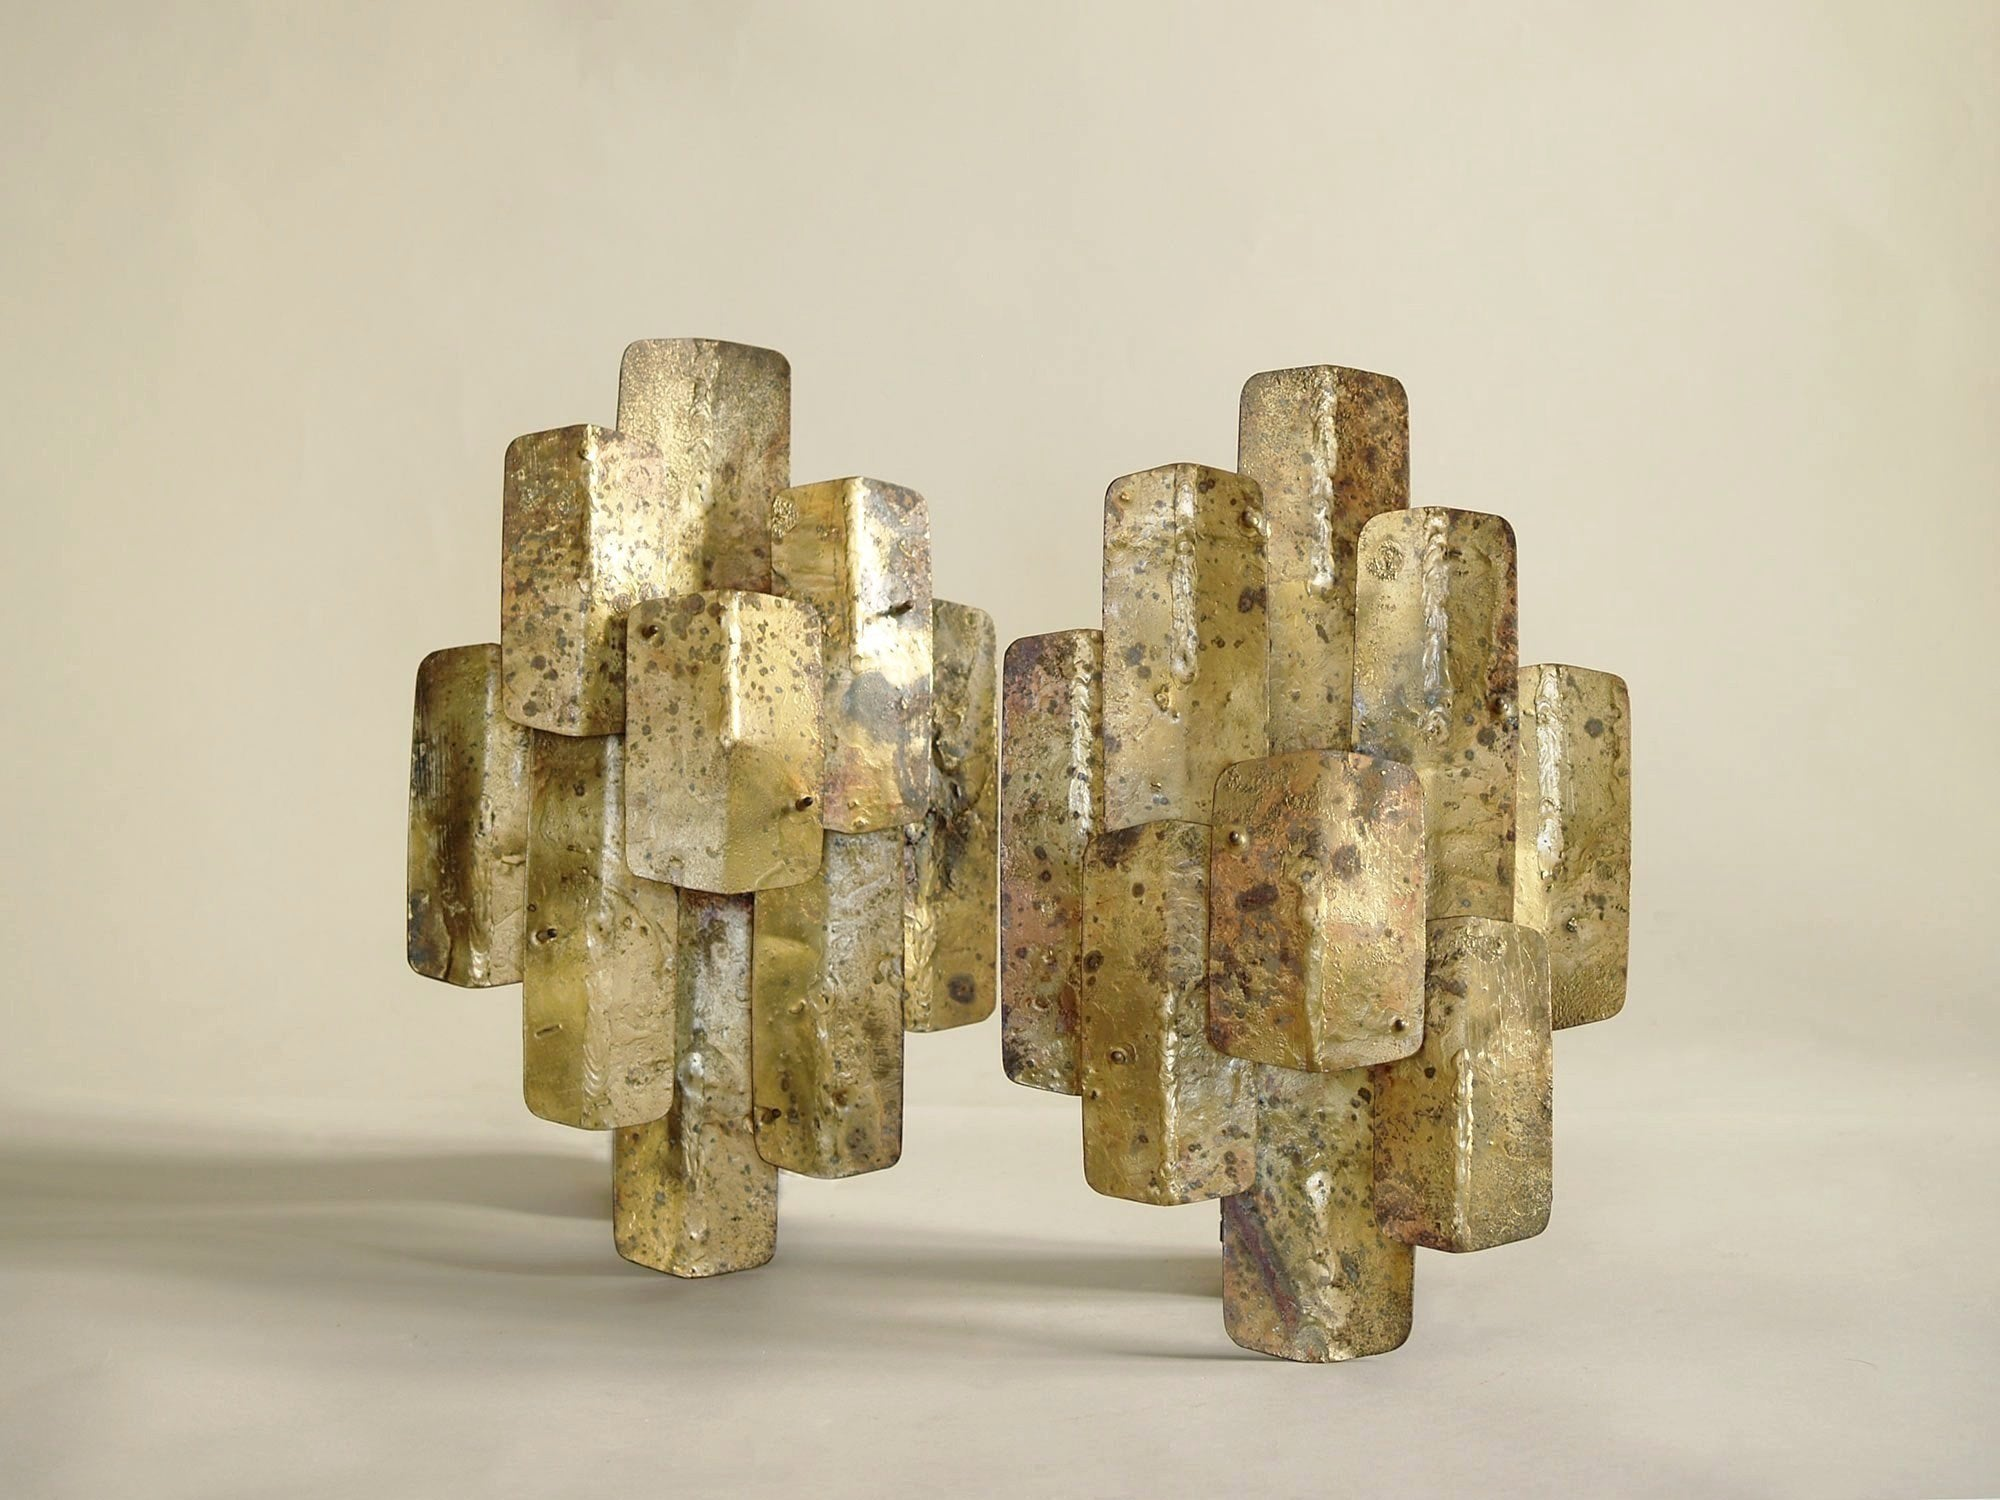 Paire d'appliques murales brutalistes d'Auguste Fix, France (vers 1958)..Pair of brutalist brass wall sconces by Auguste Fix (circa 1958)